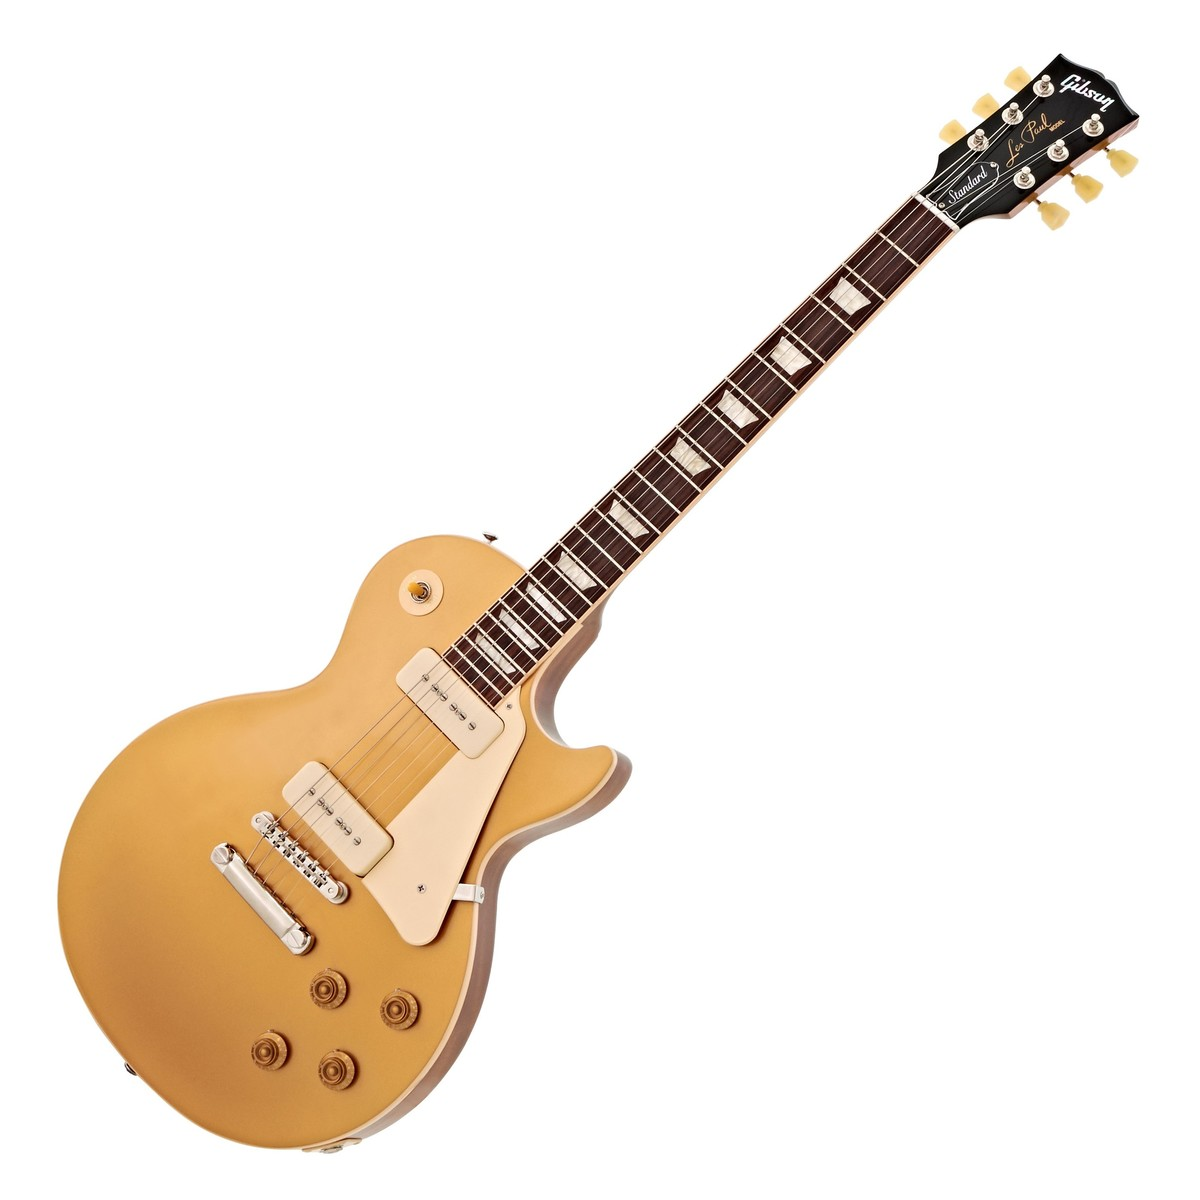 gibson les paul standard 50s p90 gold top at gear4music. Black Bedroom Furniture Sets. Home Design Ideas